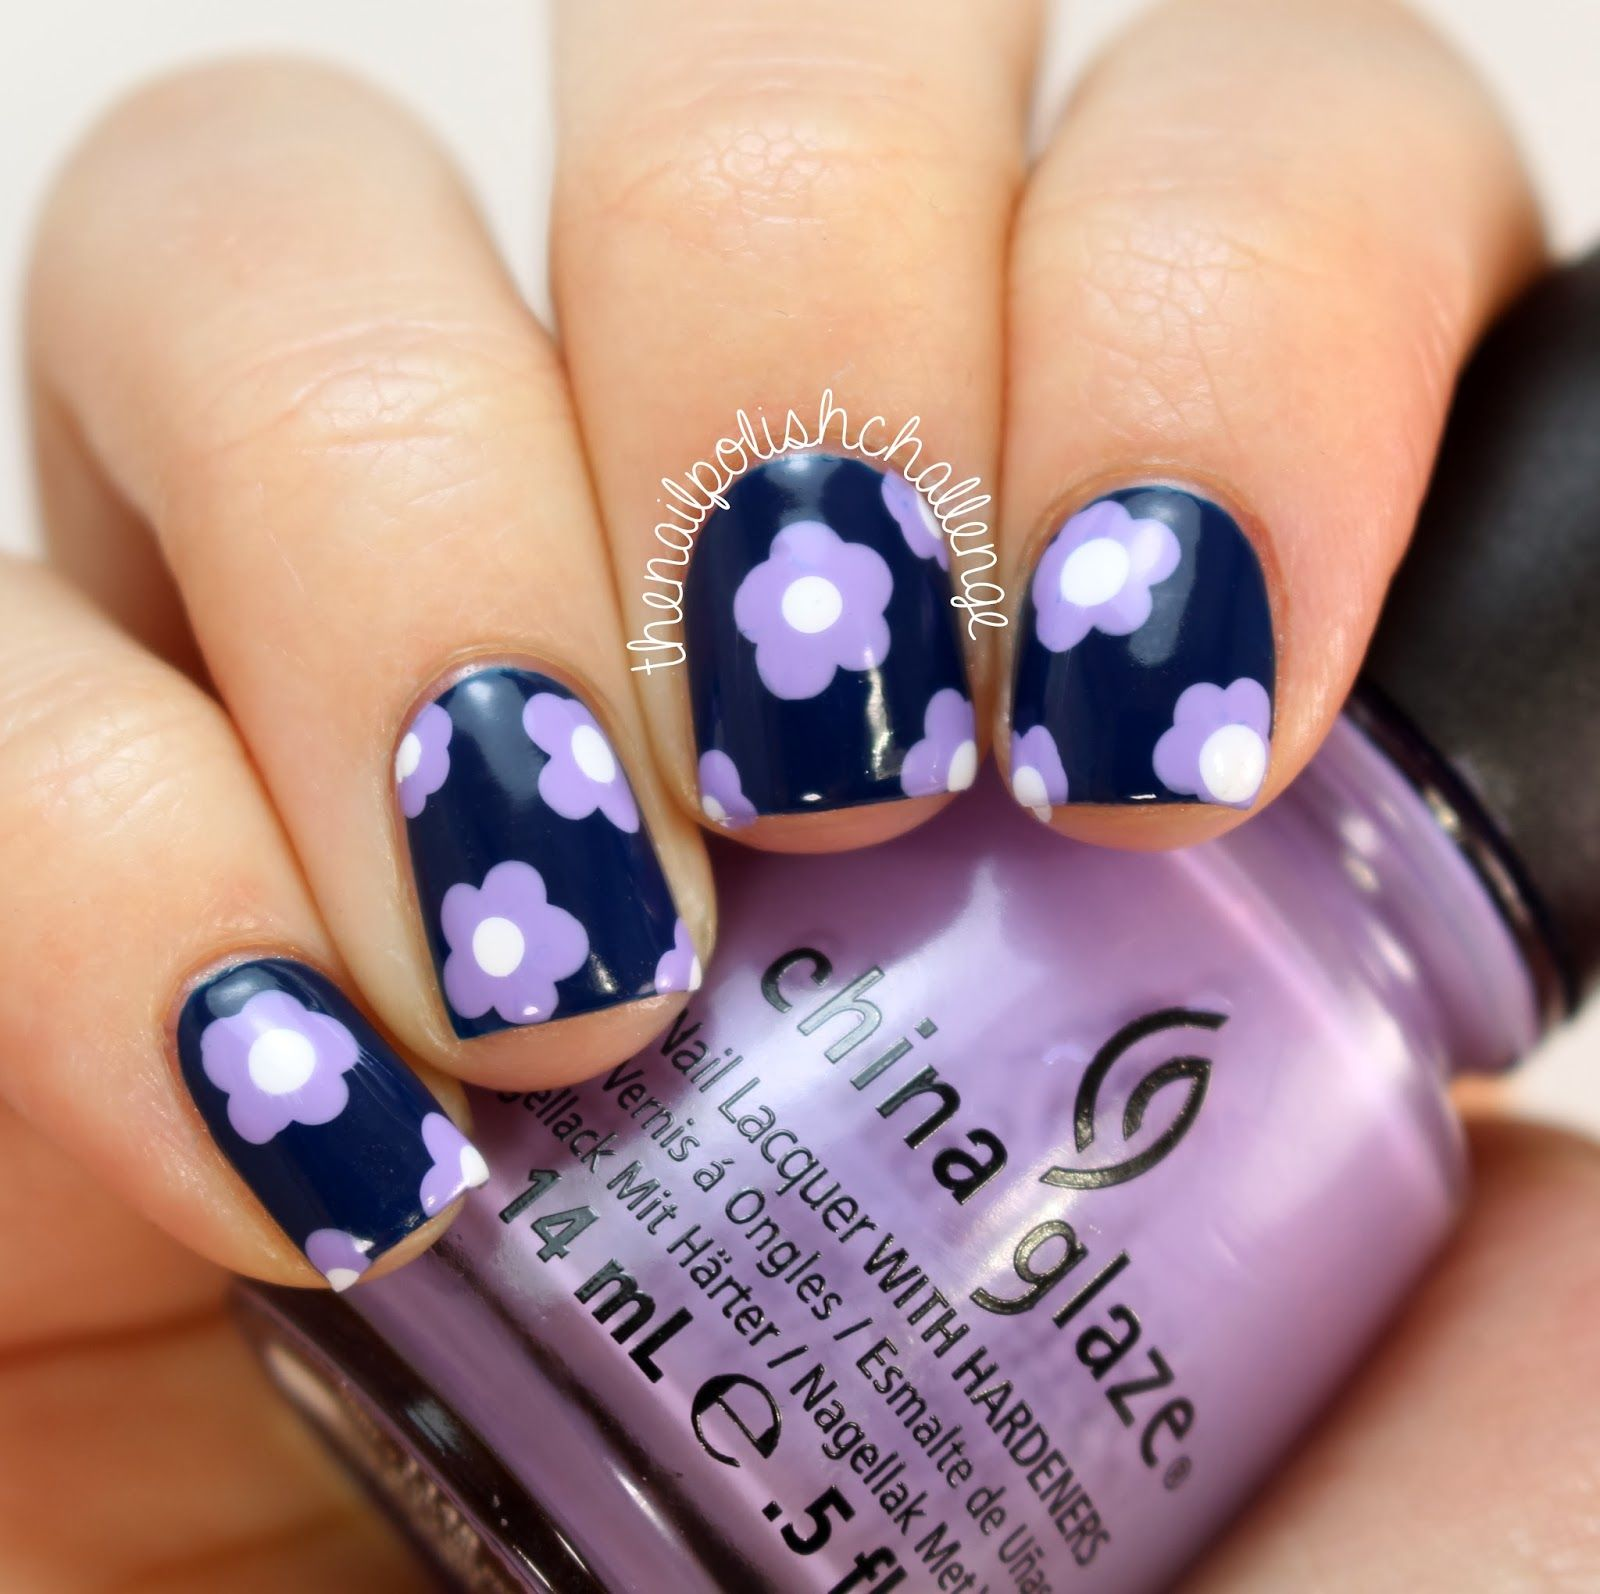 The nail polish challenge simple lavender and navy flower nail art